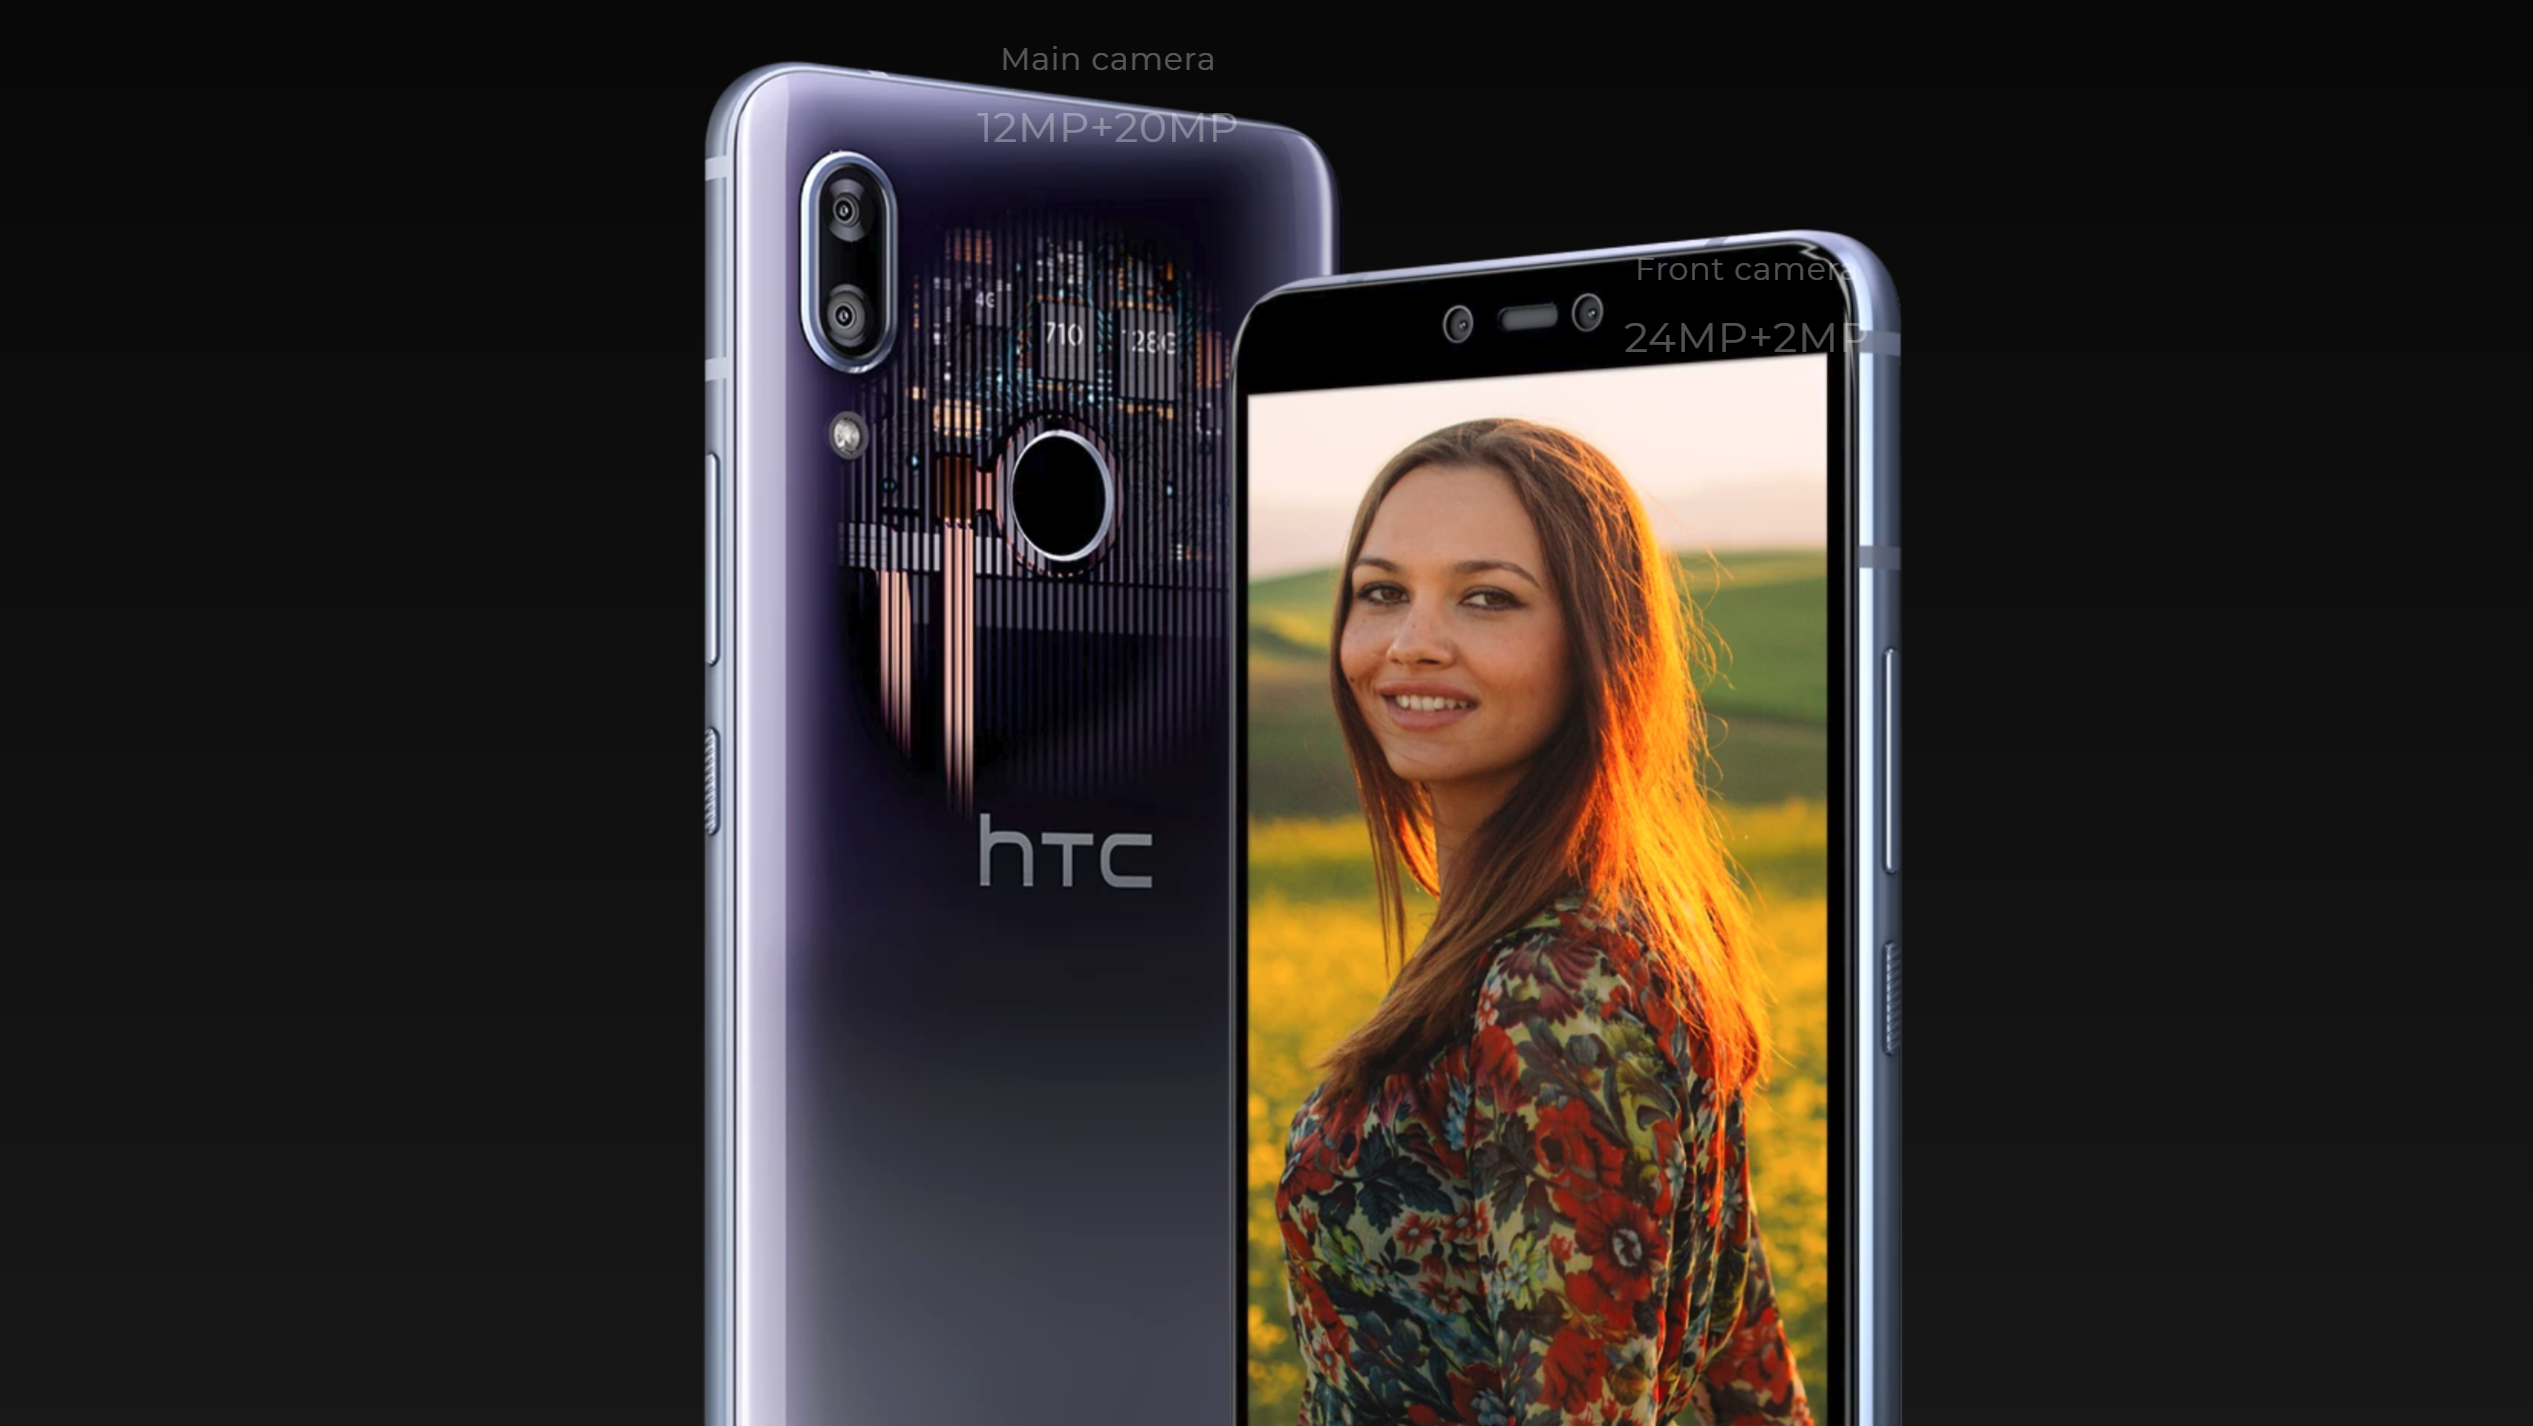 HTC Desire 19 Plus 128GB Expected Specs, Release Date June 2019